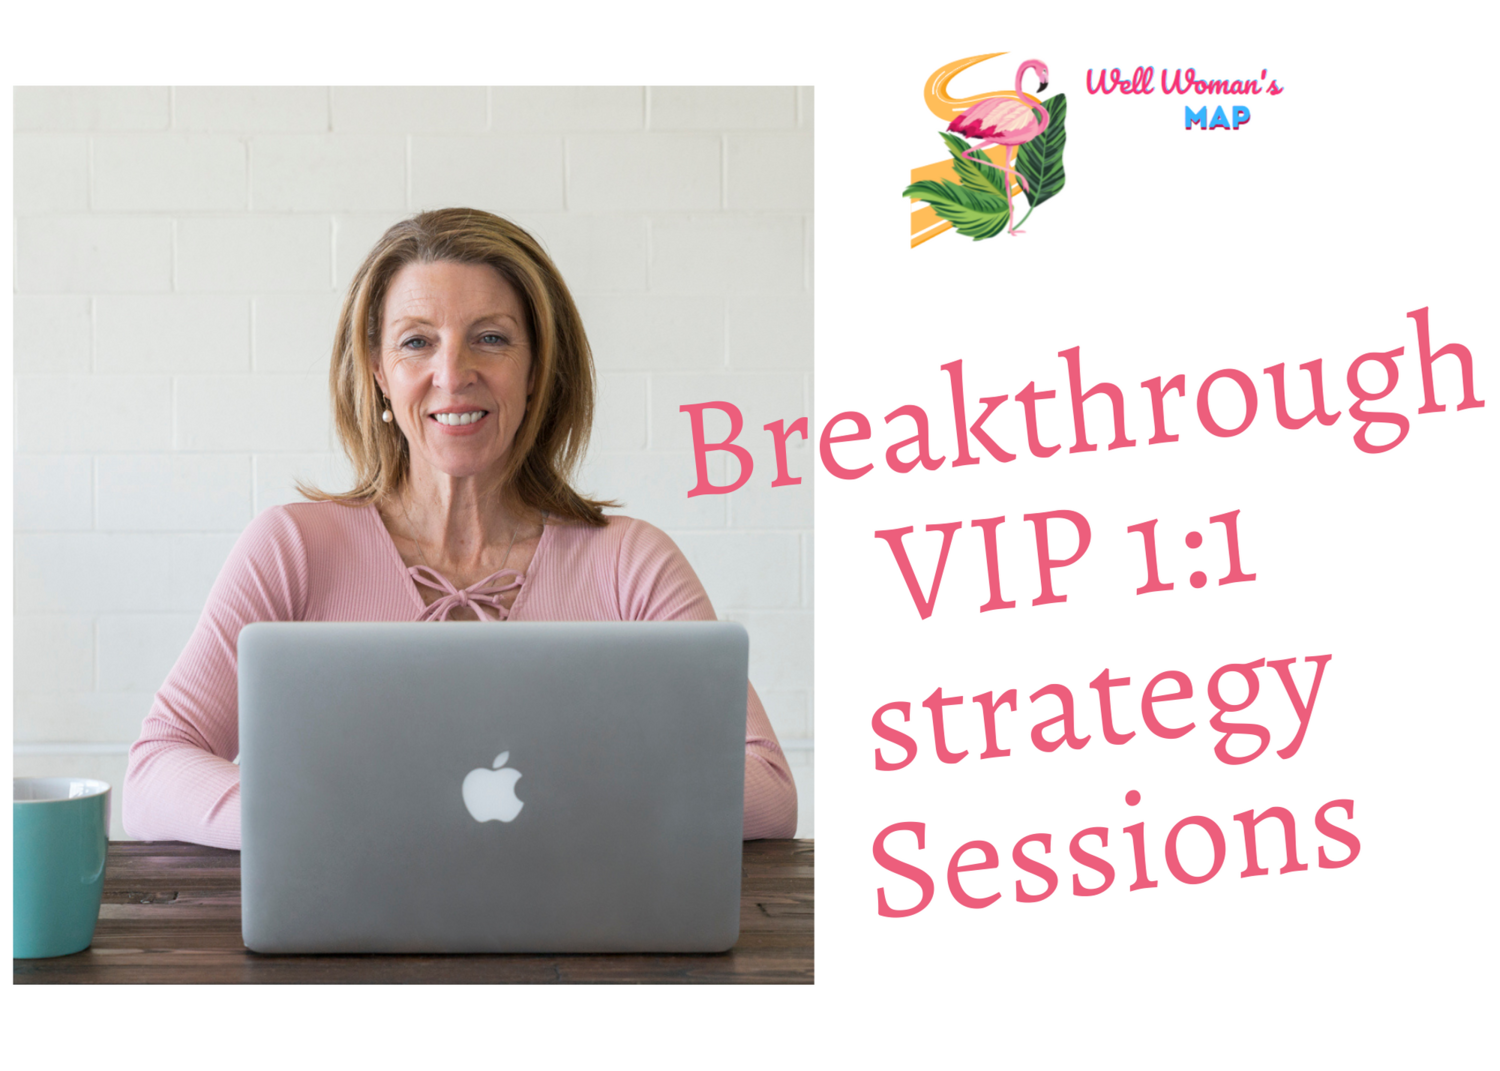 Breakthrough Weightloss strategy Sessions 90 min 1:1 calls/session